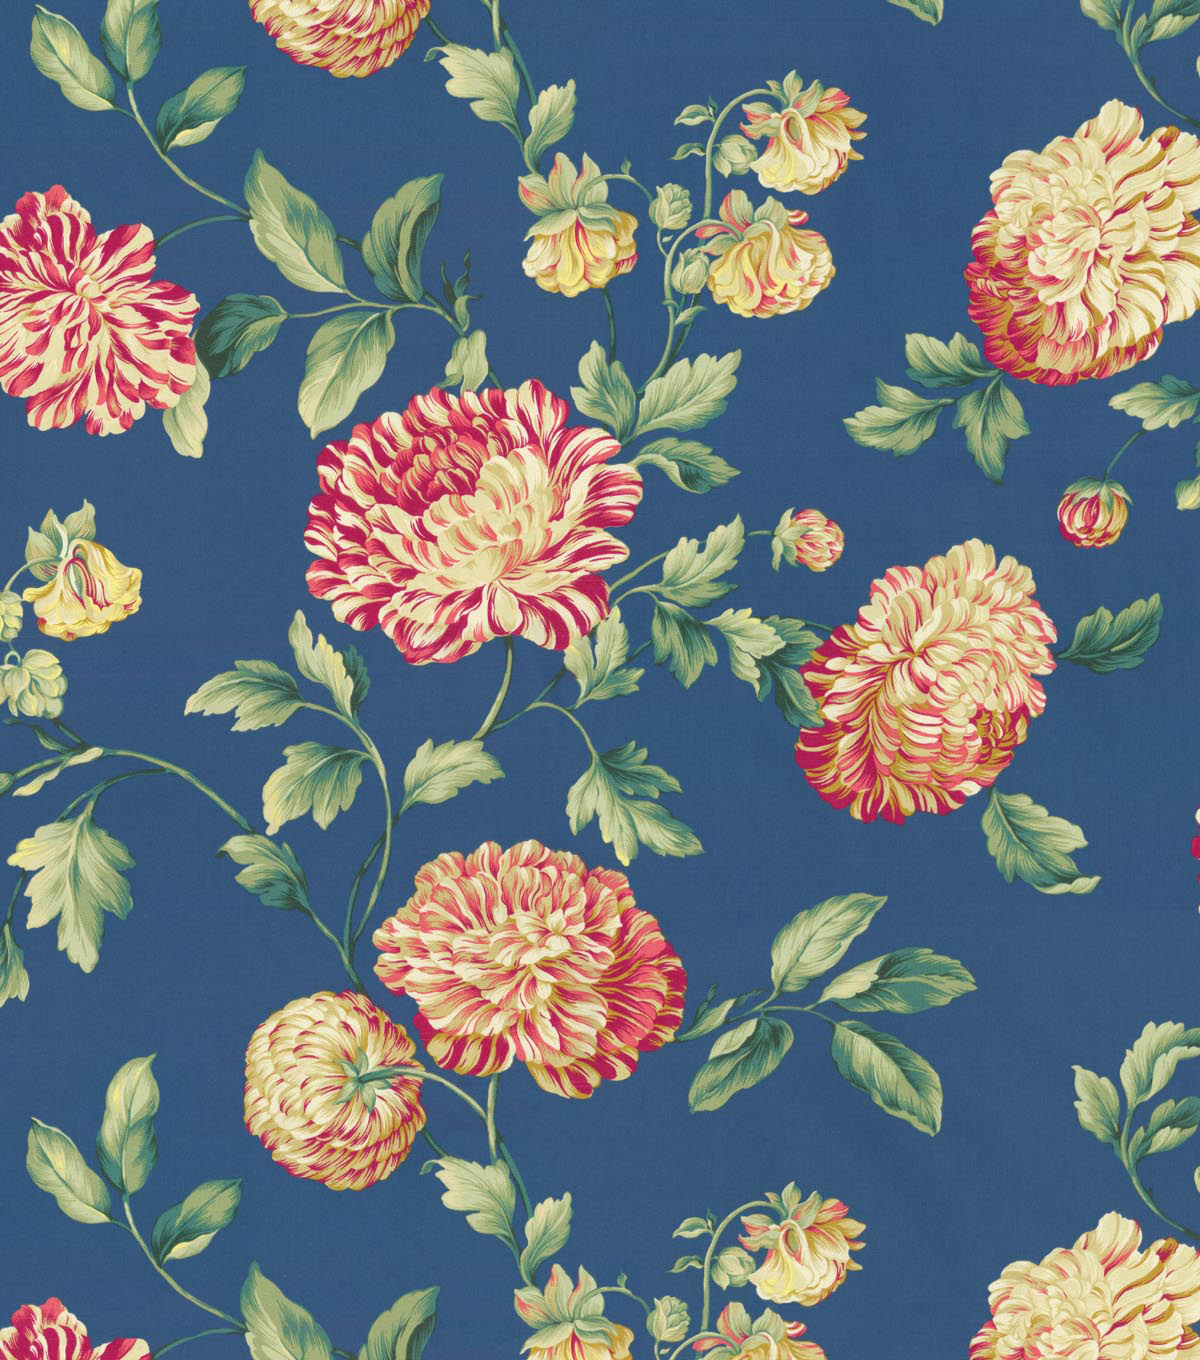 Home Decor 8\u0022x8\u0022 Swatch Fabric-Williamsburg Charlotte Jewel